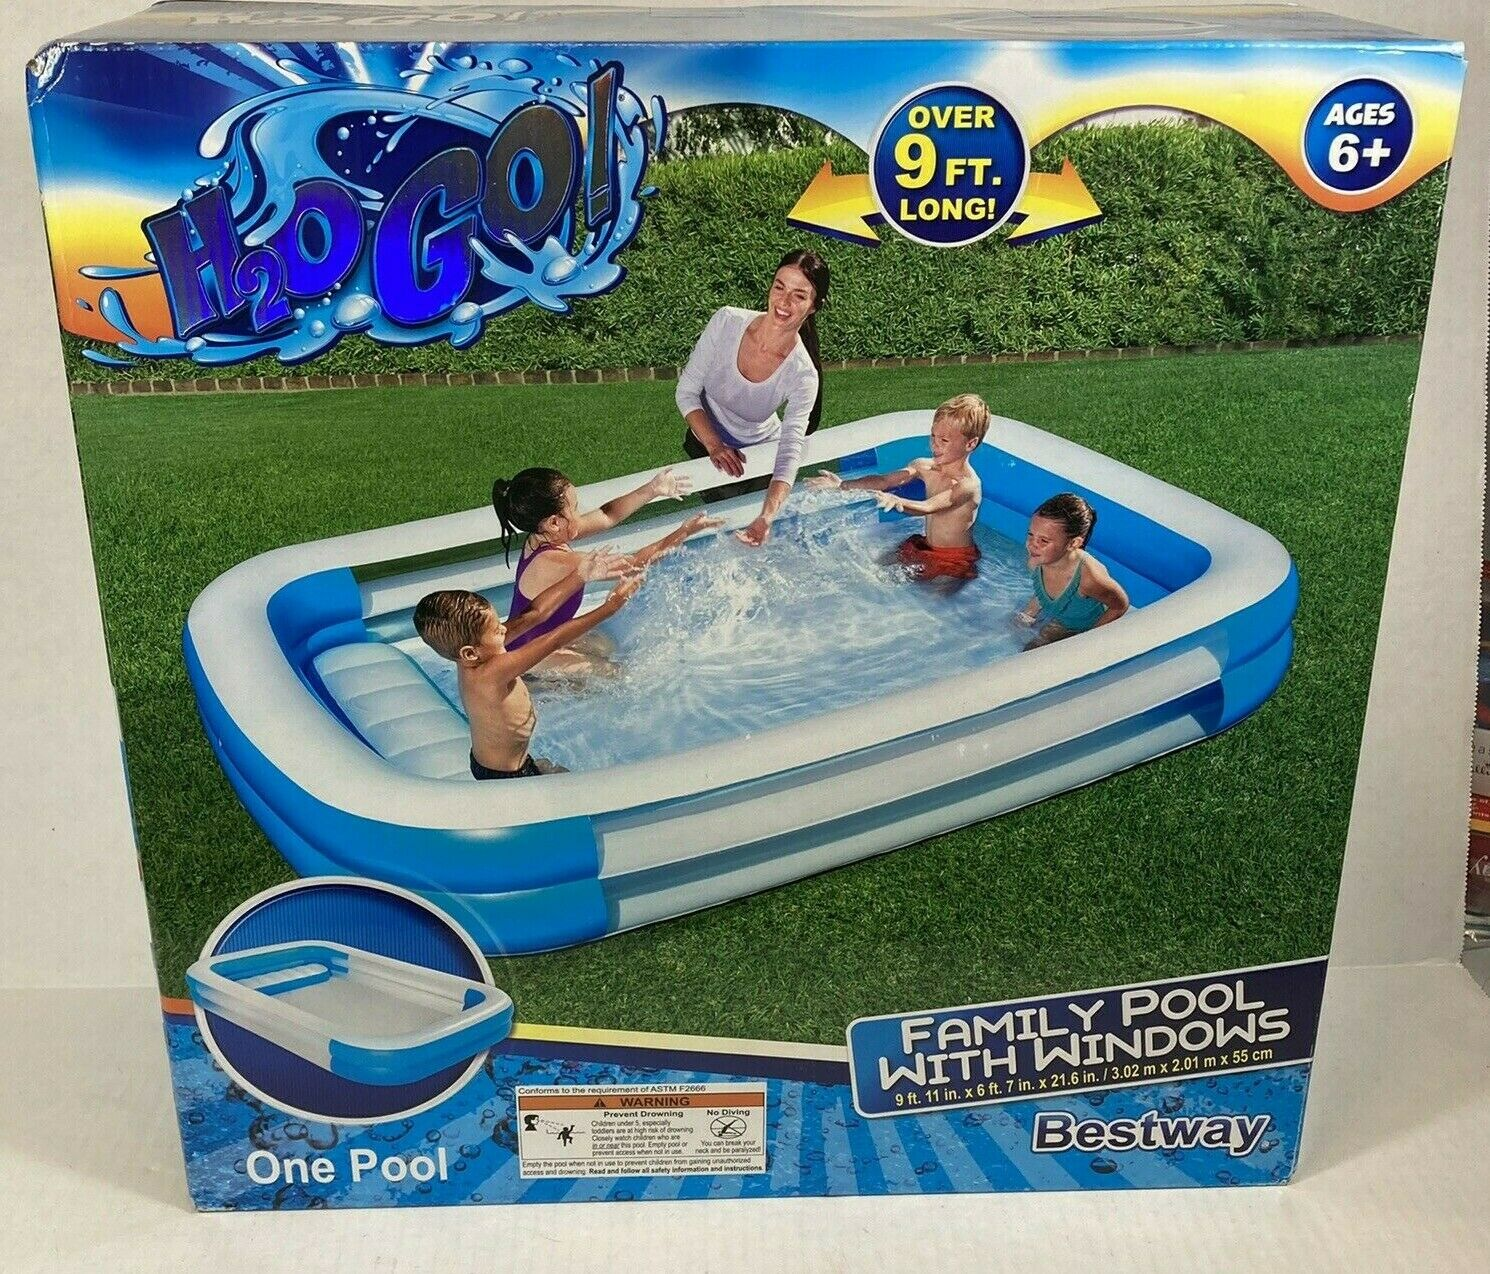 H2OGo Inflatable Family Play Swimming Pool Bench Seat Kiddie Almost 10' Fun NEW